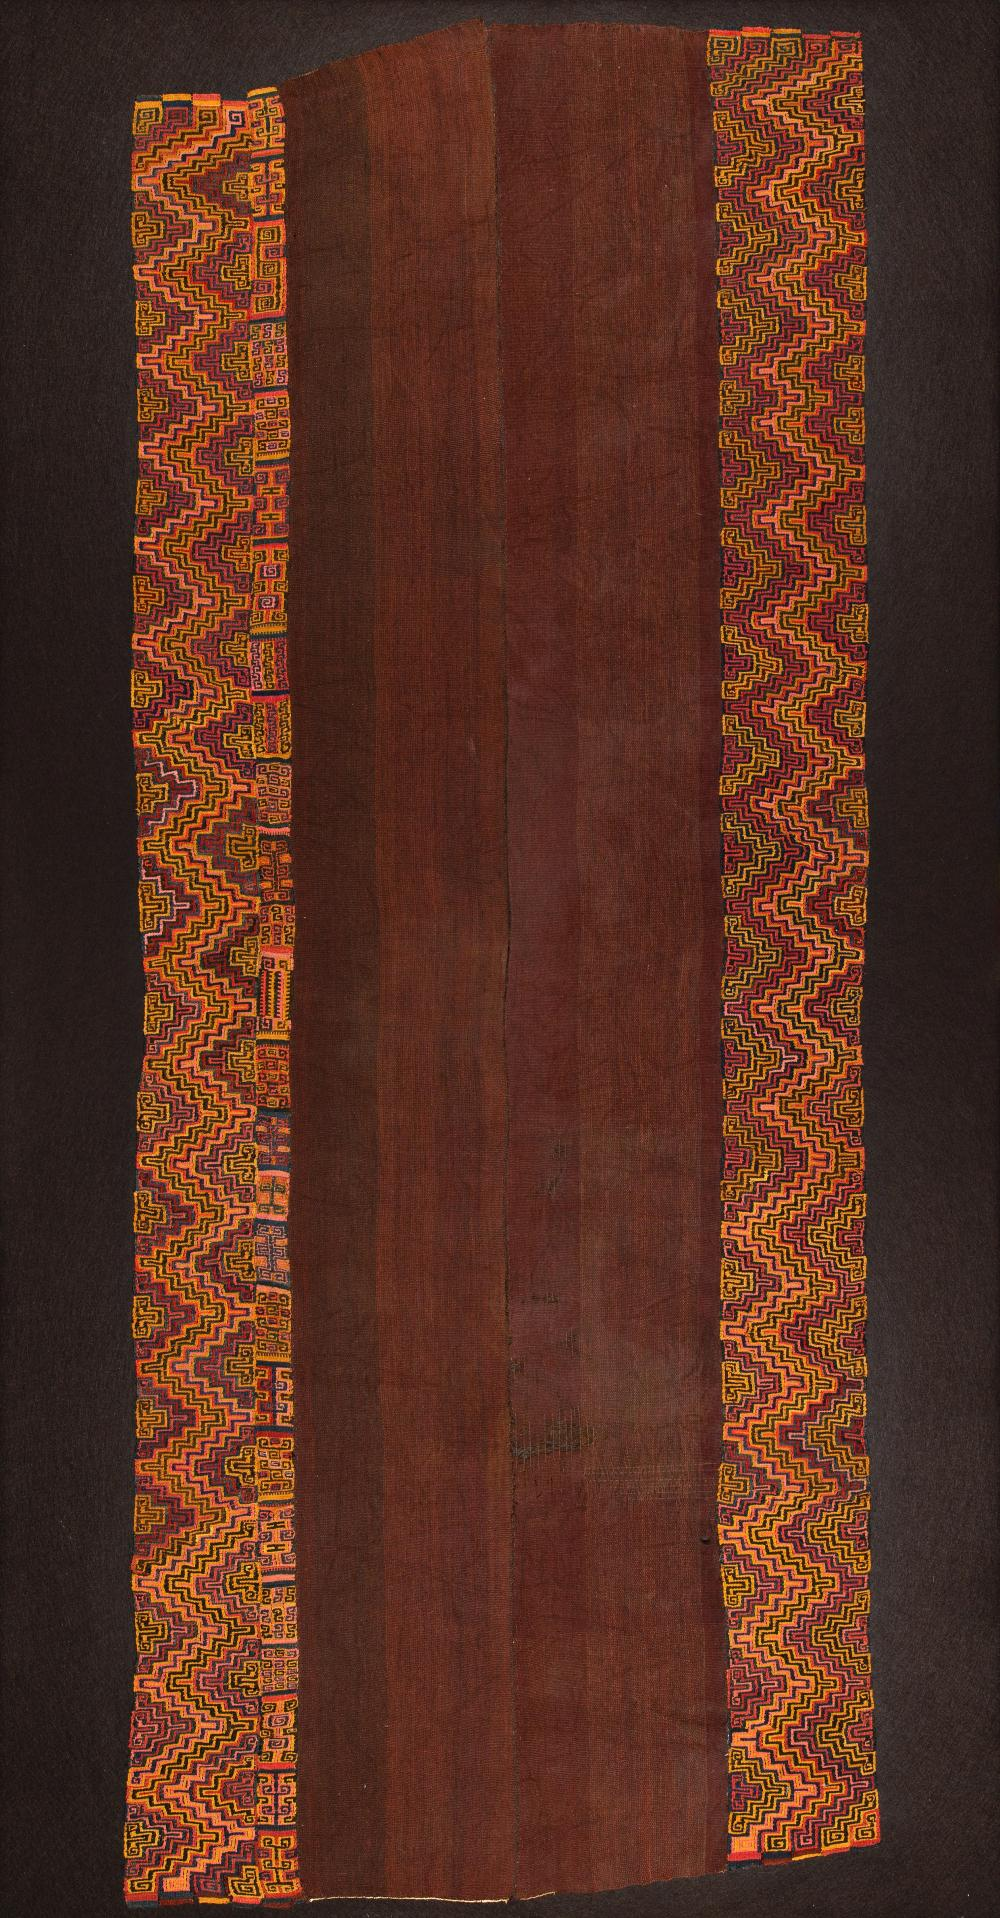 Ceremonial garment woven in two parts with decorative border